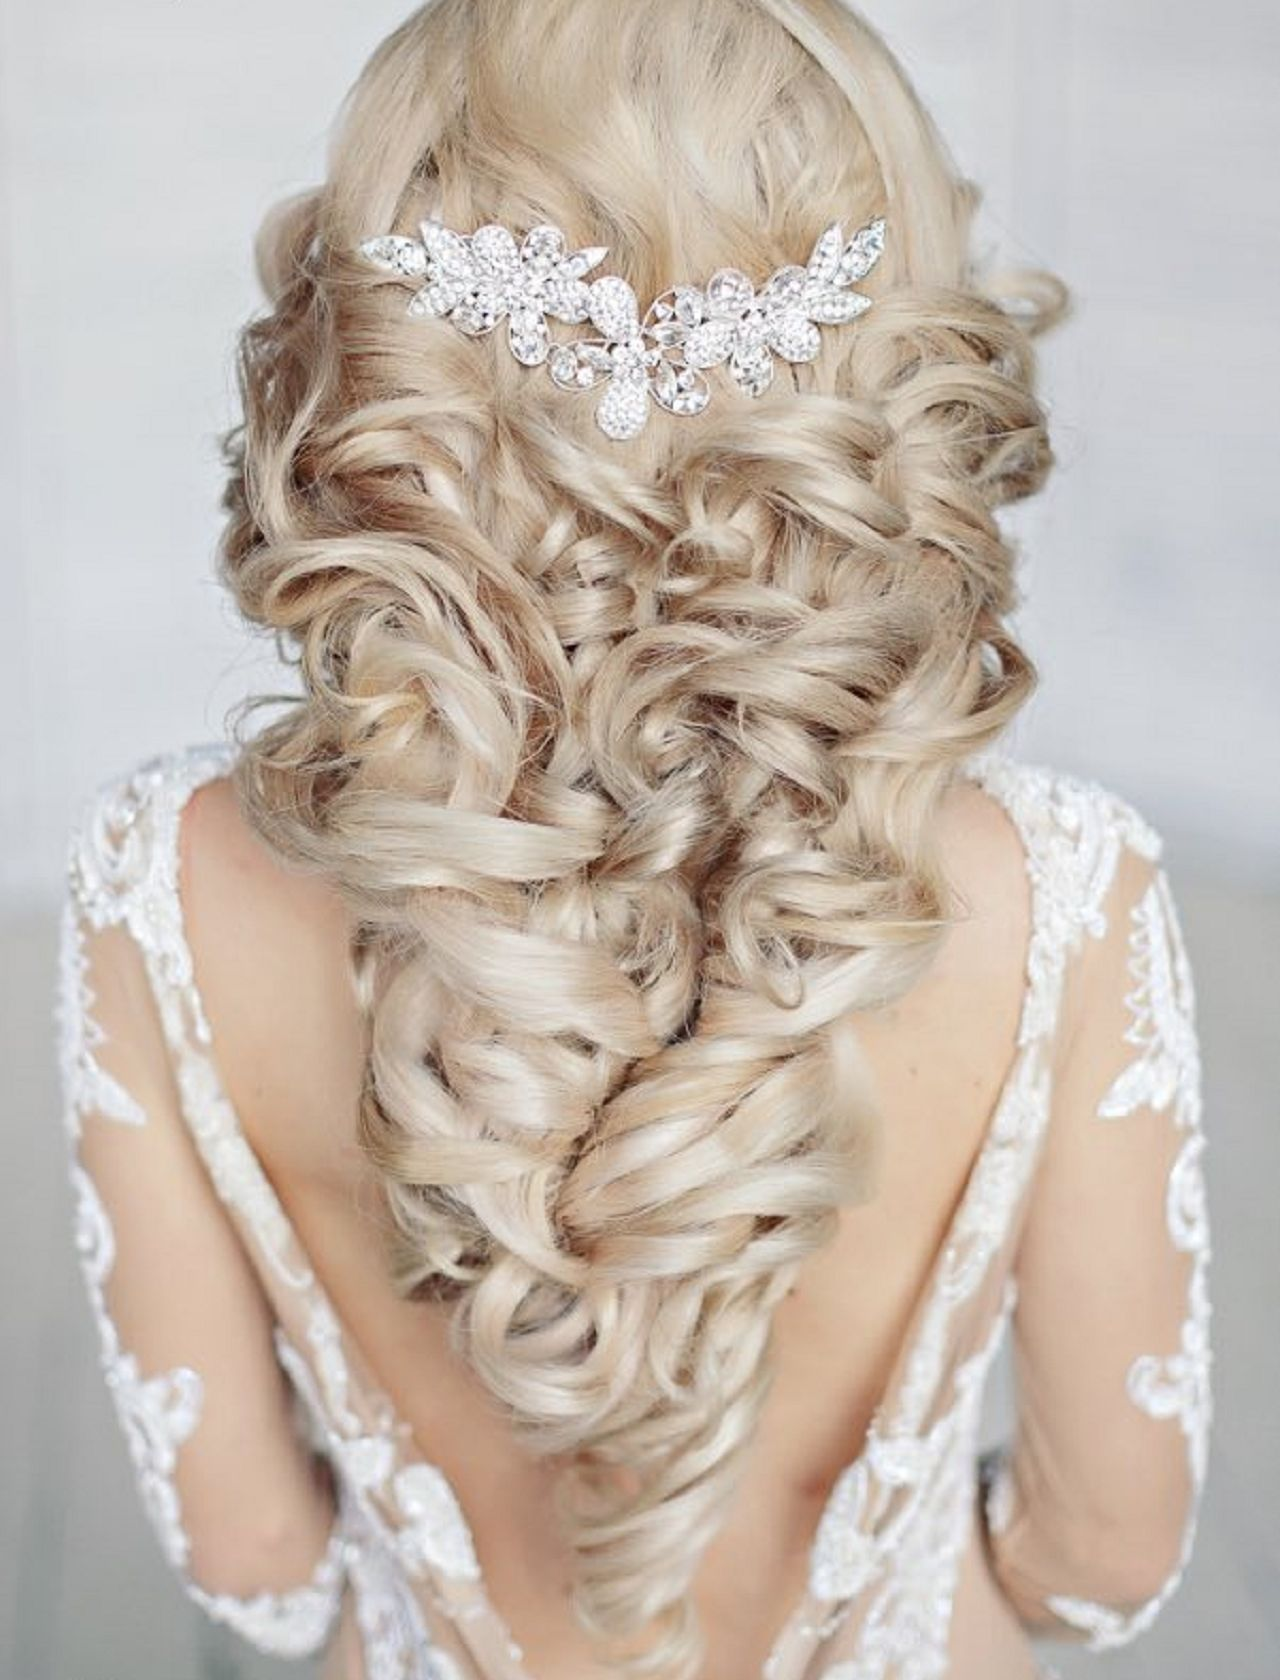 100+ Hairstyles Wedding hairstyle | lady lovely locks | Pinterest ...